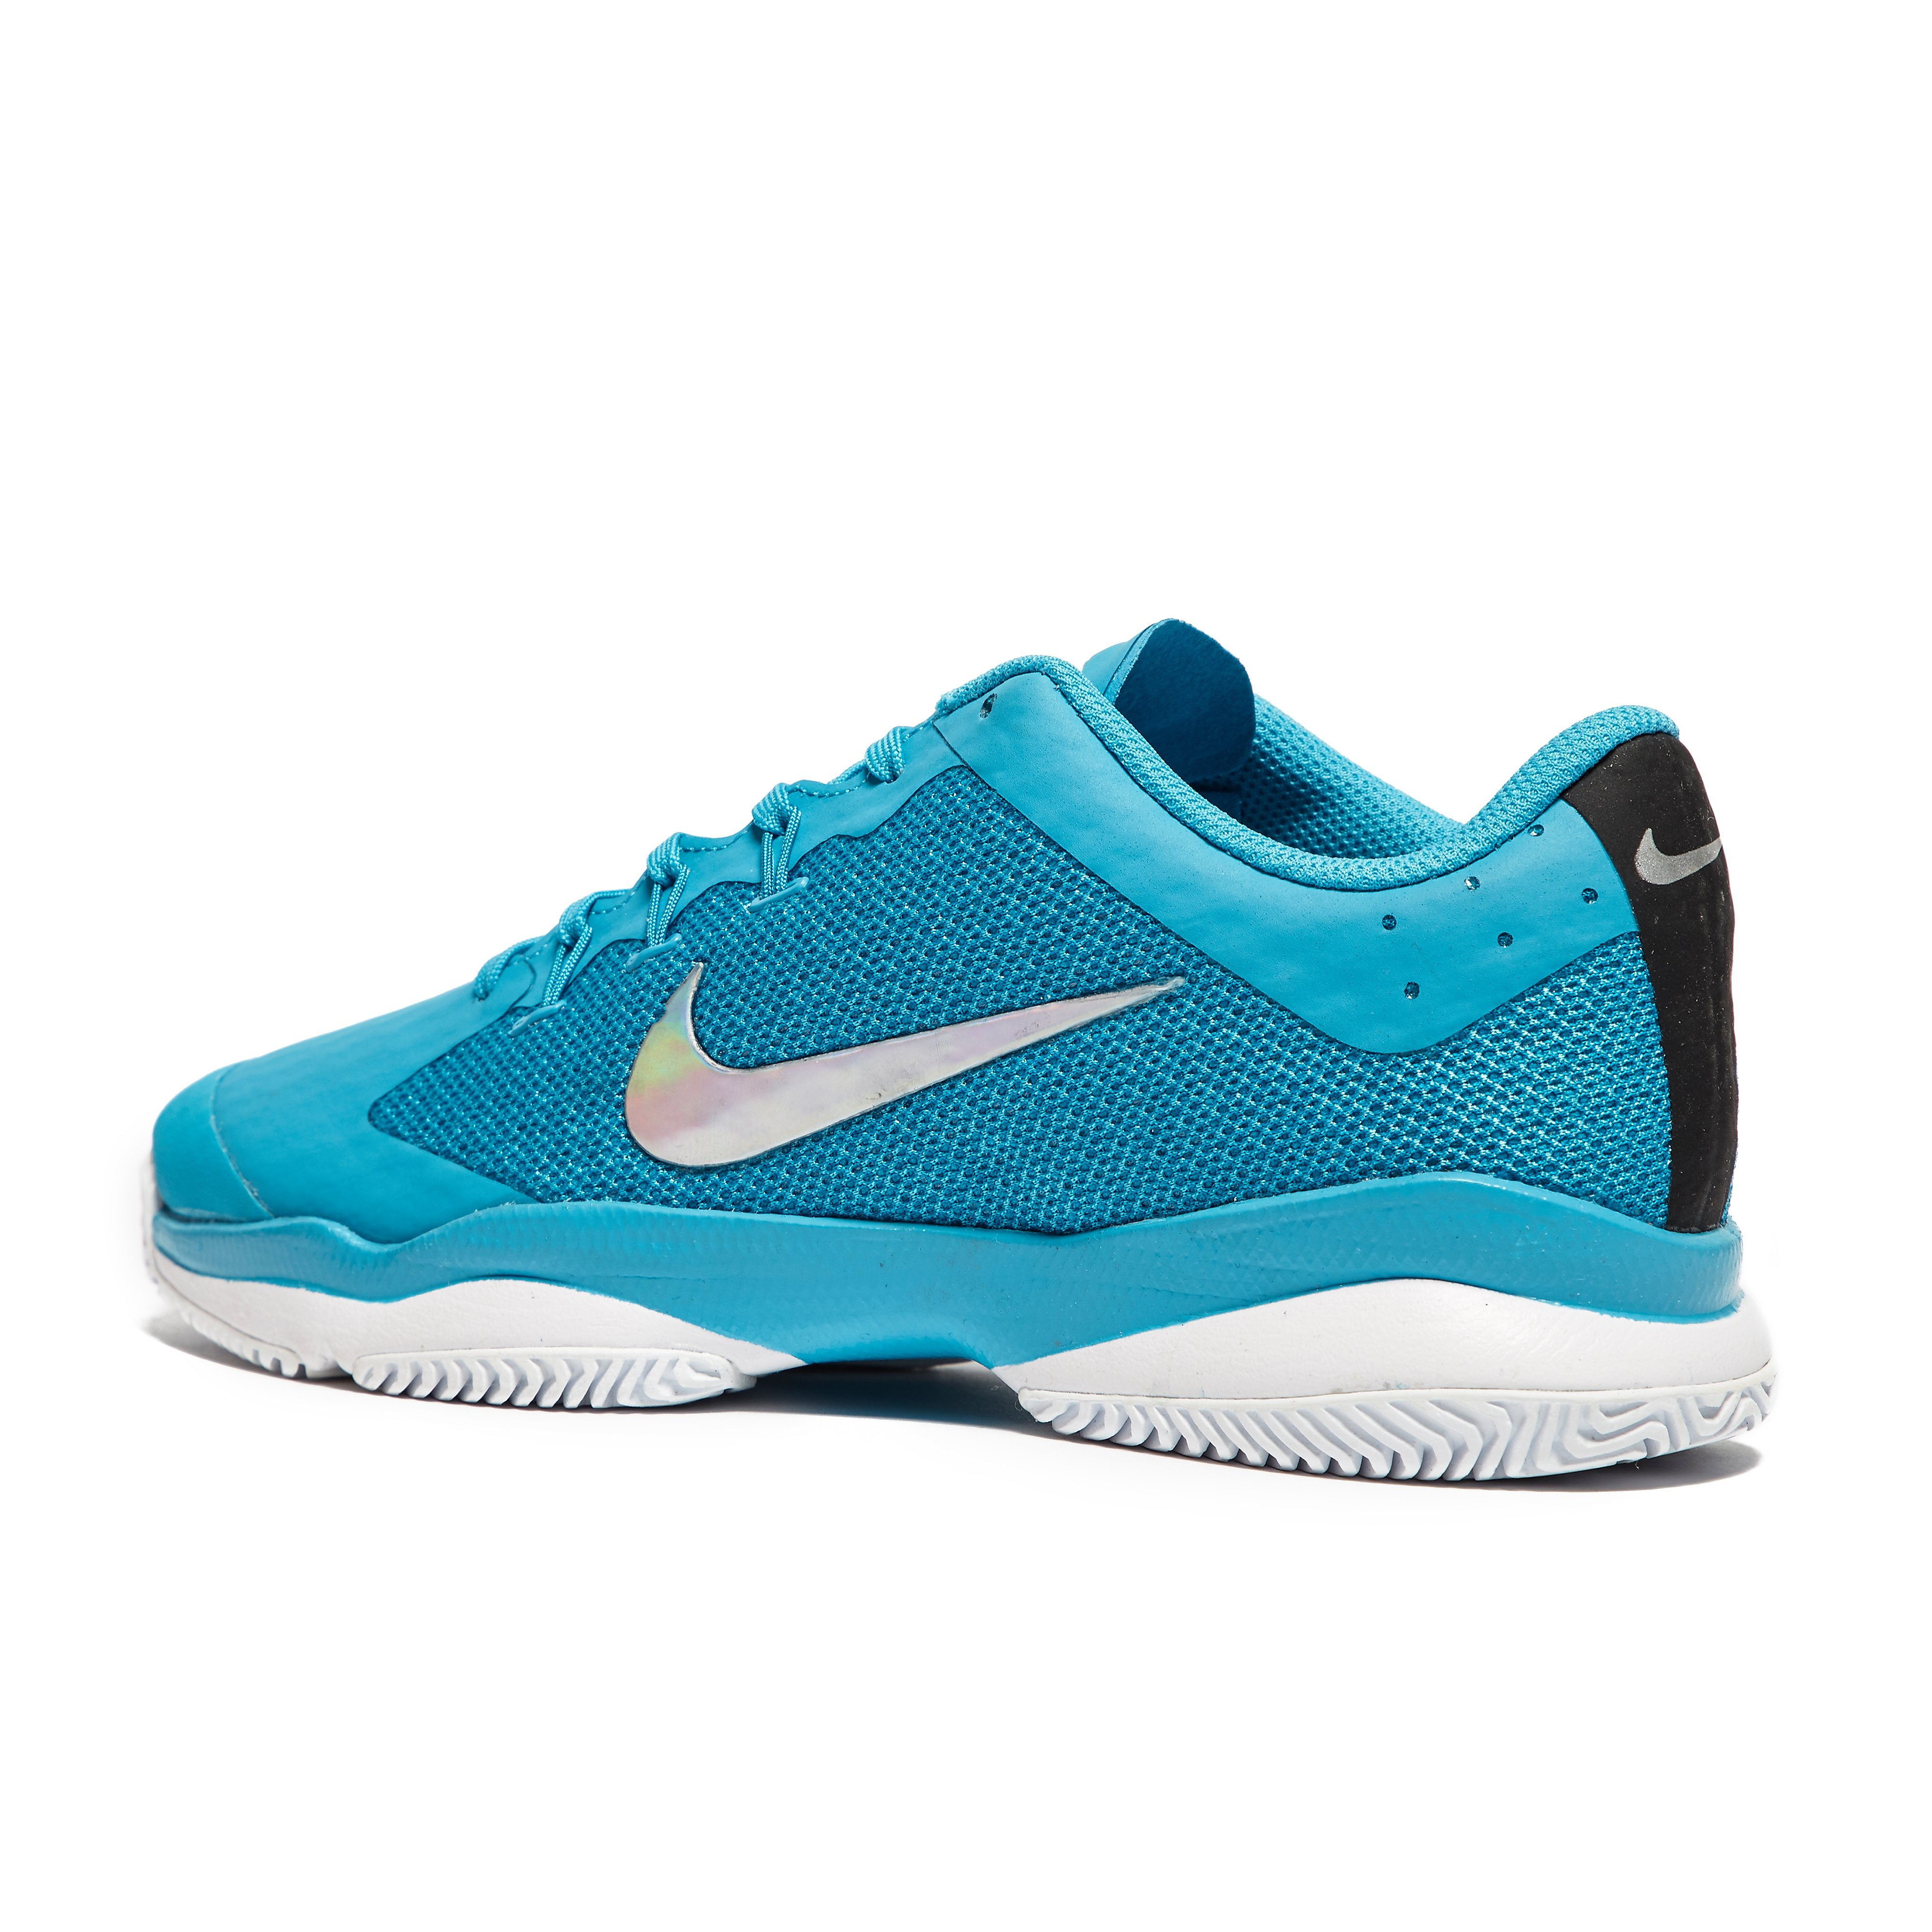 Nike Court Air Zoom Ultra Hard Court Women's Tennis Shoes